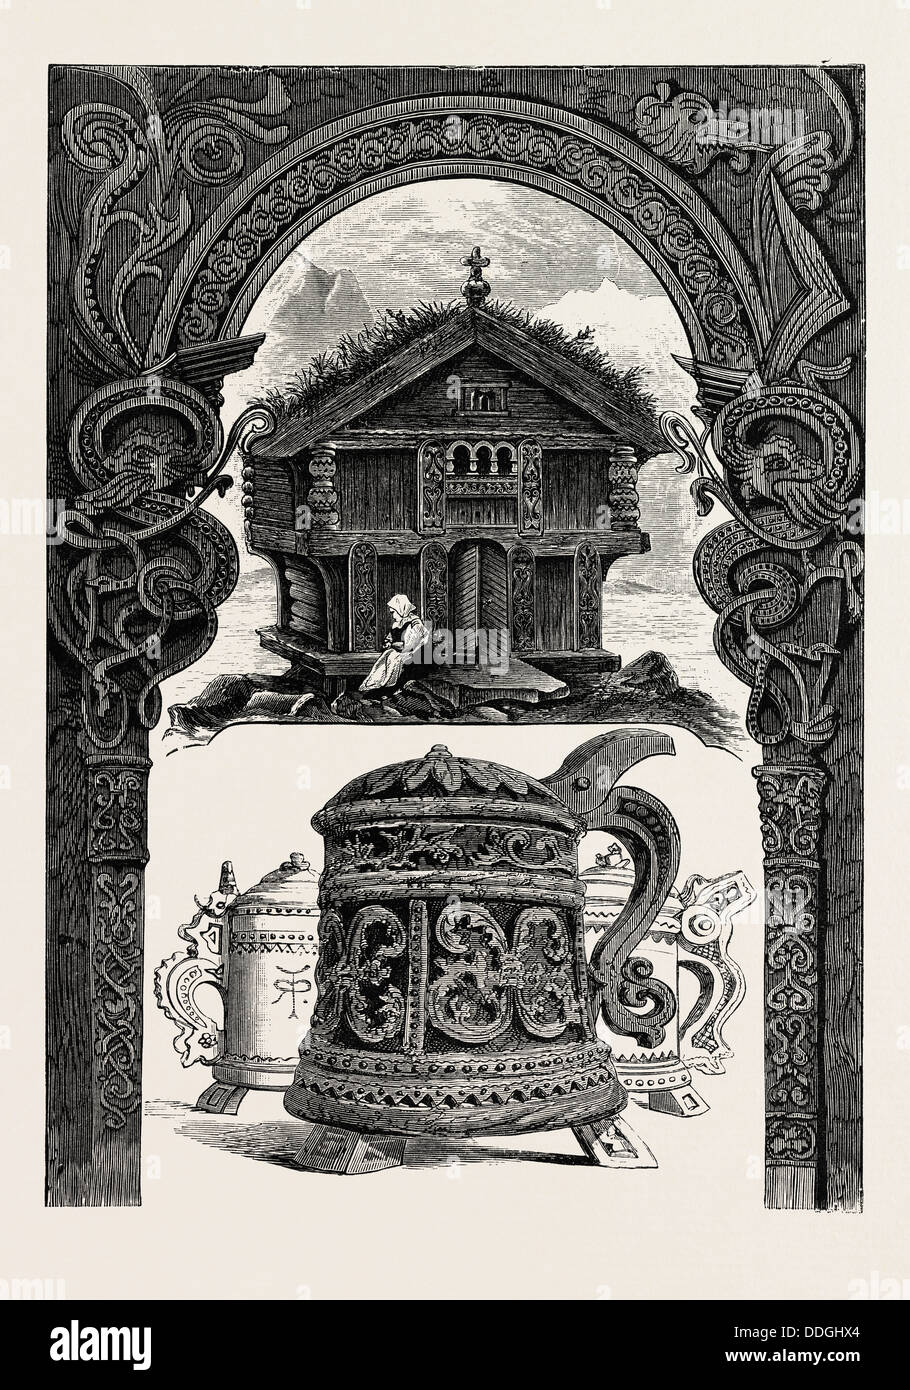 CARVED LINTEL, STABBUR AND TANKARDS - Stock Image